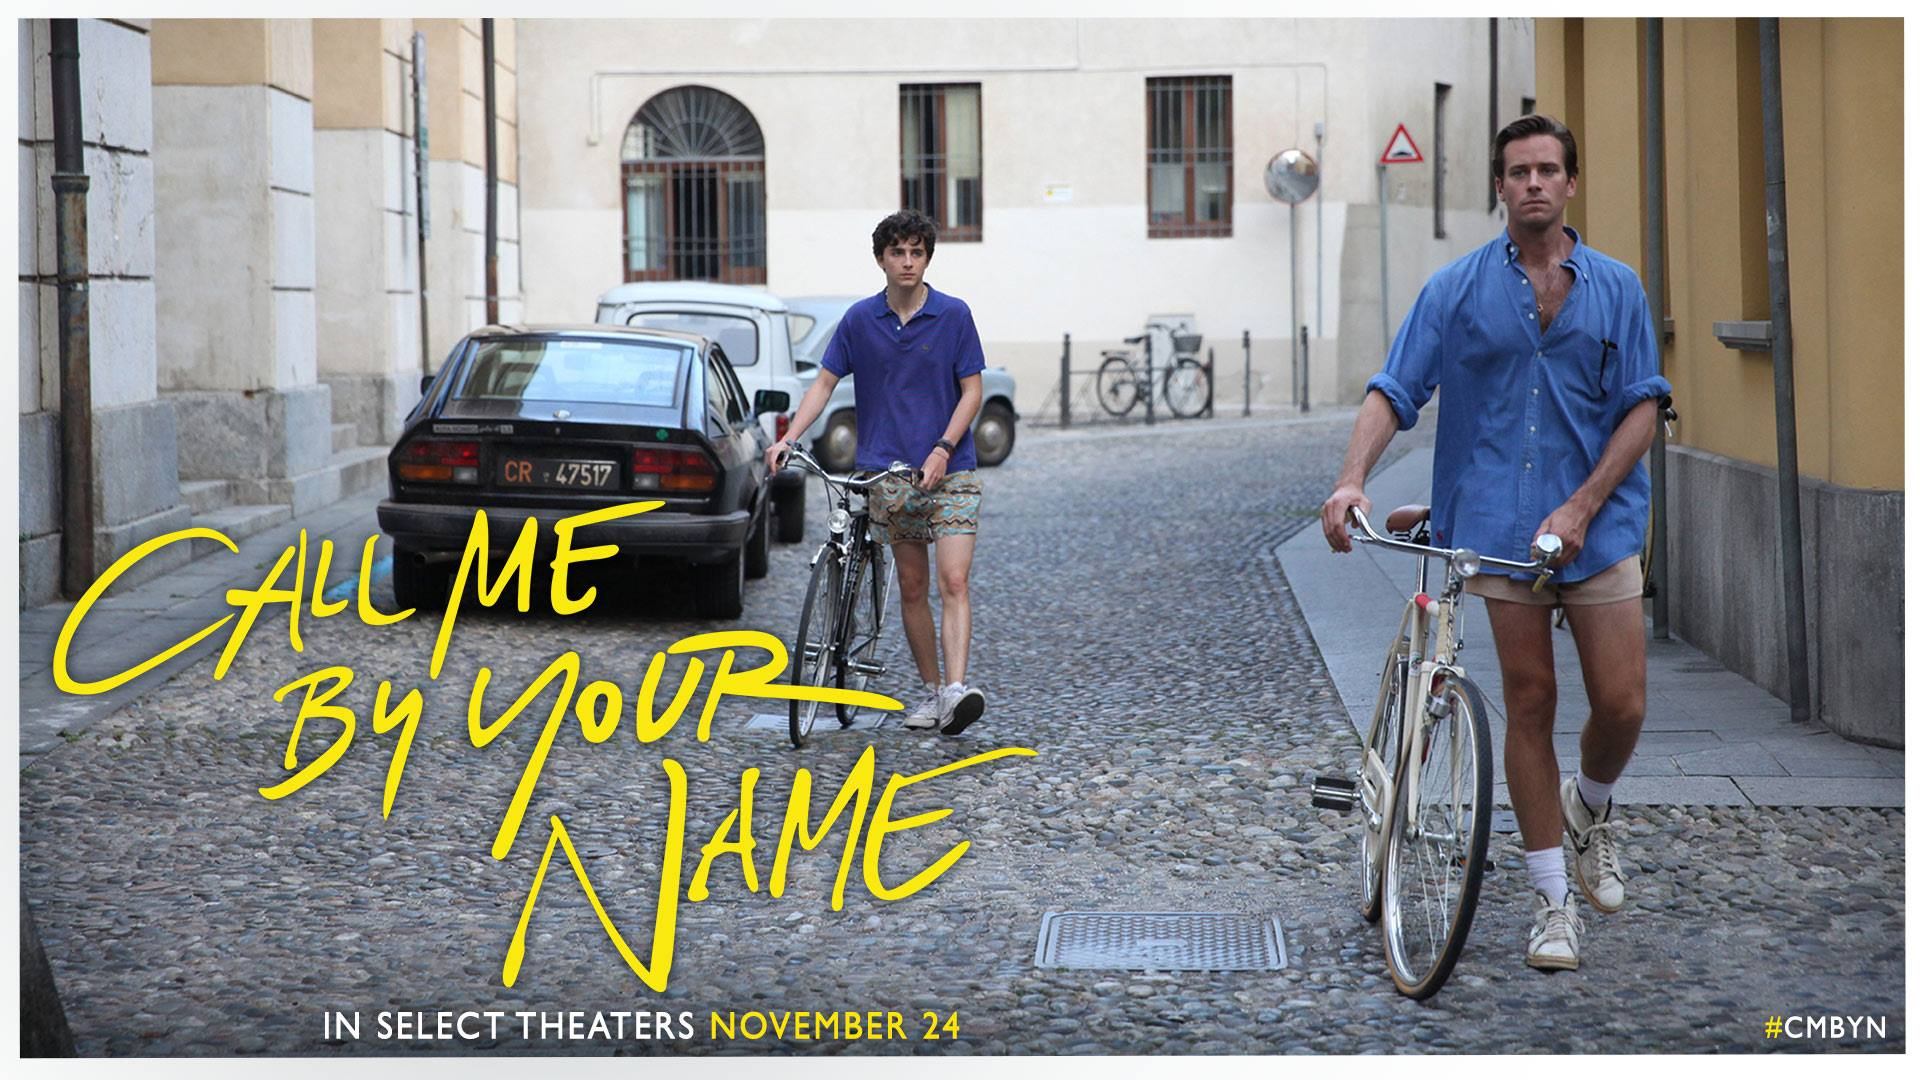 Call Me By Your Name A Significant Seductive Summer Romance The